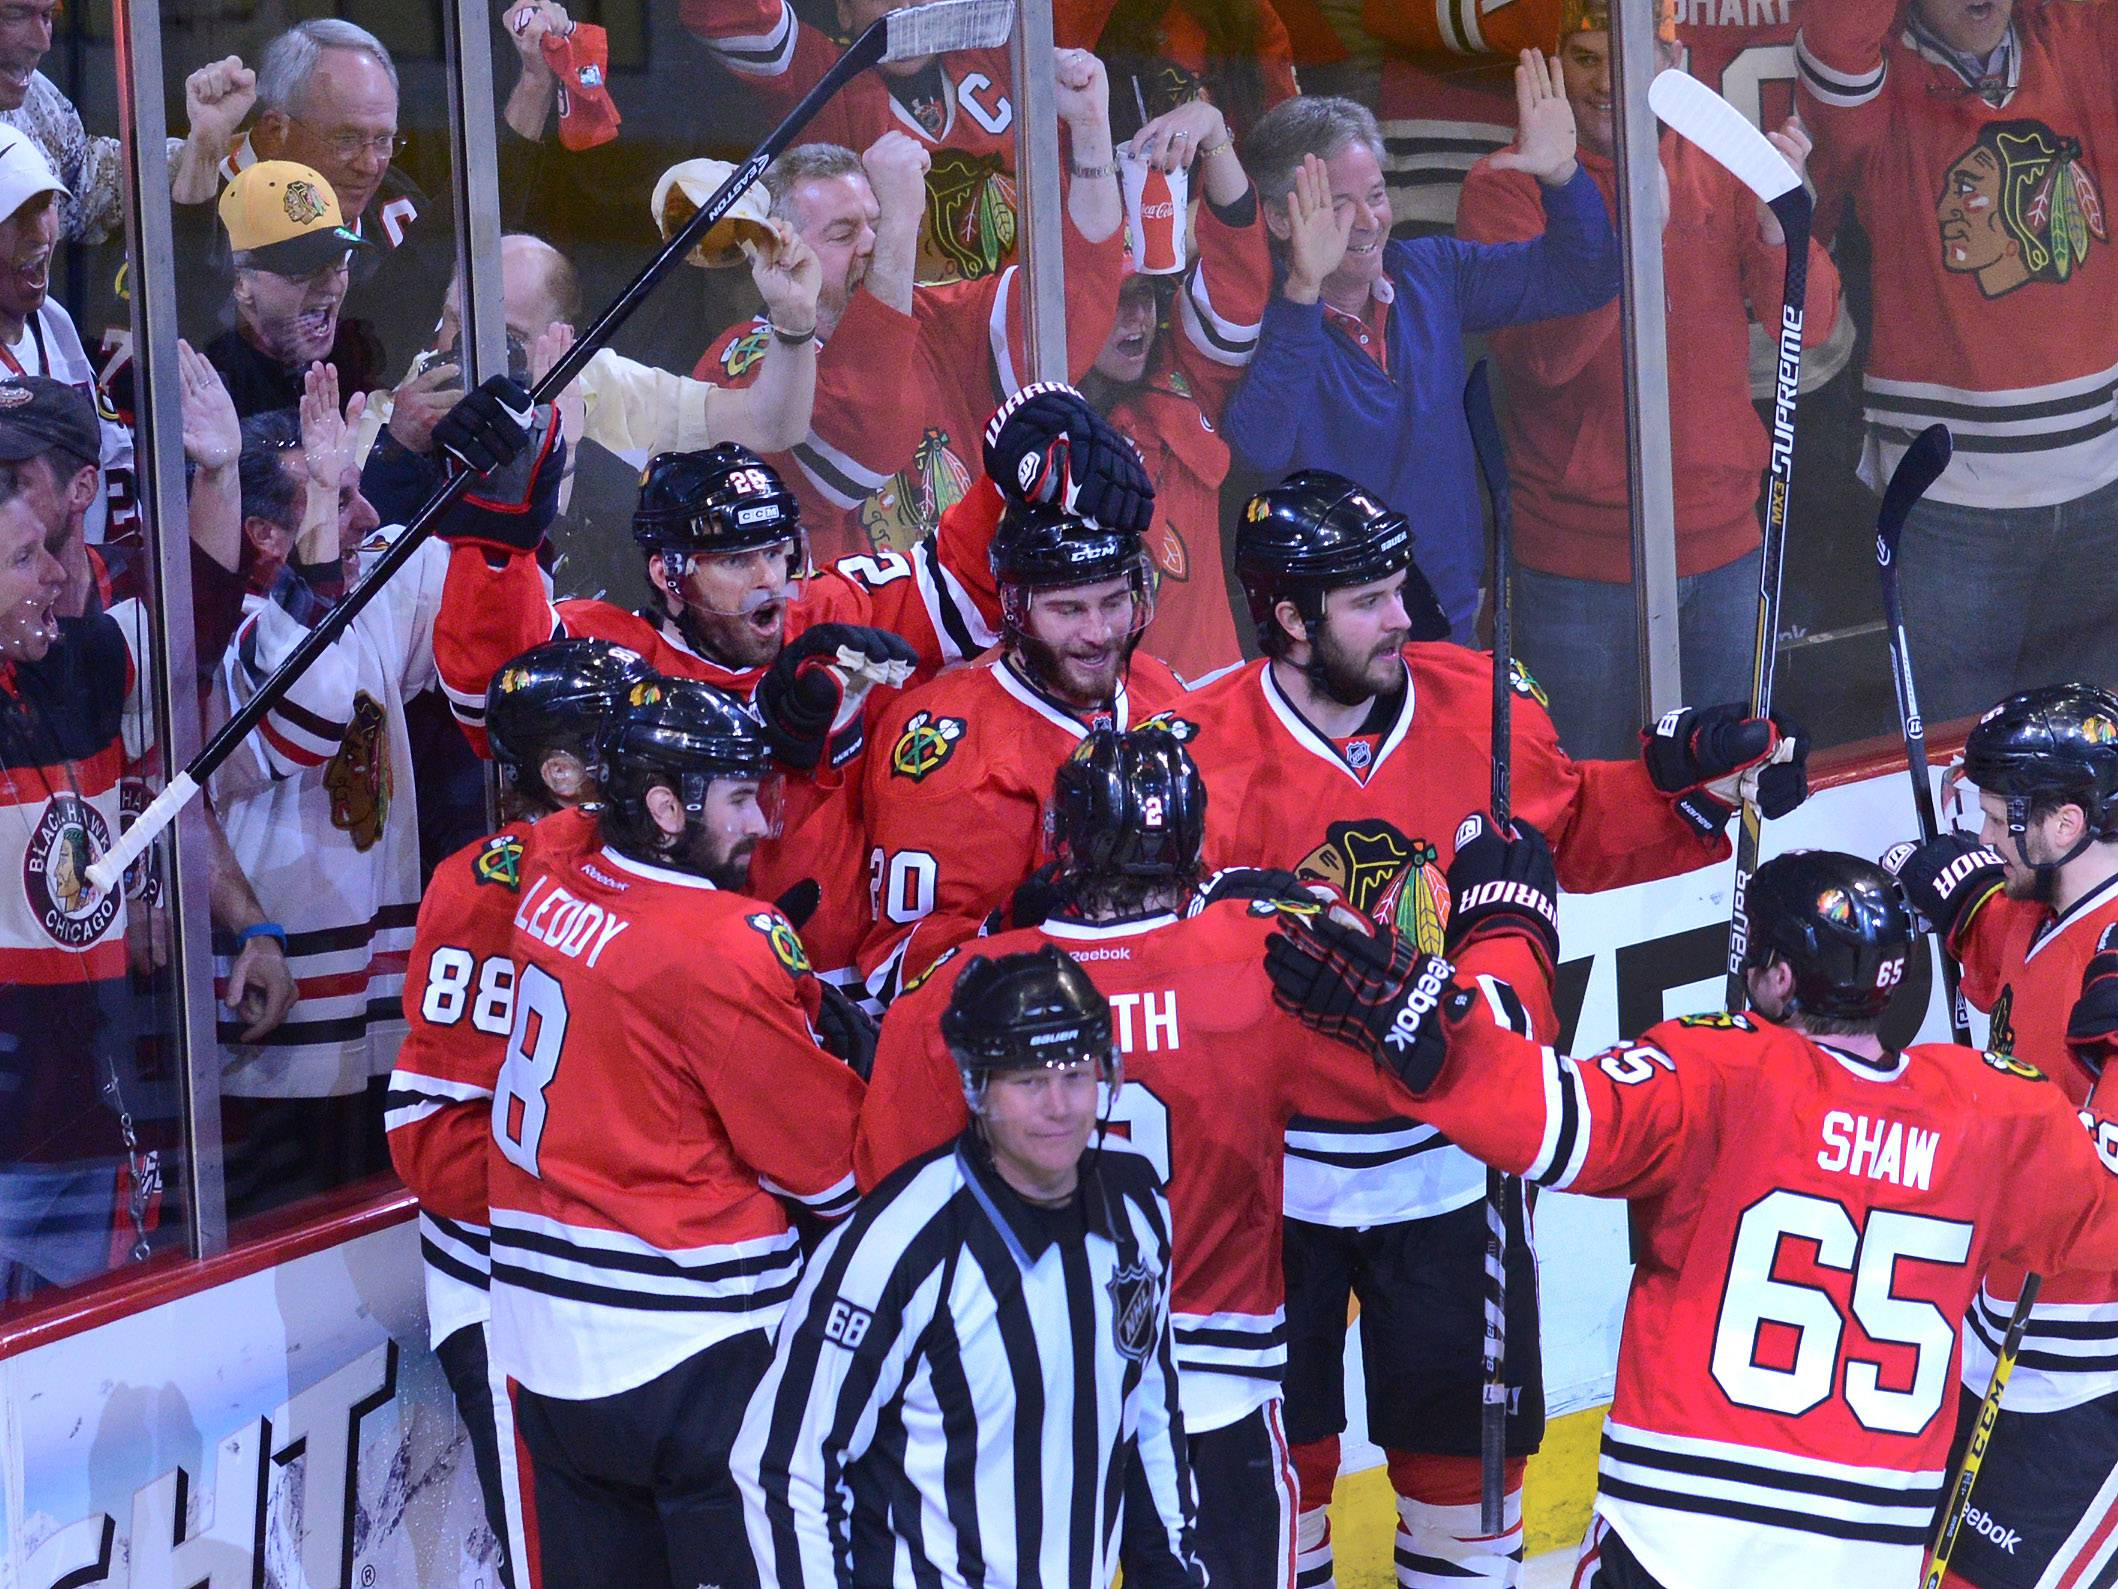 Bob Chwedyk/bchwedyk@dailyherald.comChicago Blackhawks center Michal Handzus, with raised stick in the air, is mobbed by his teammates after scoring game winning goal in double overtime during Game 5 of the Western Conference finals at the United Center on Wednesday night.